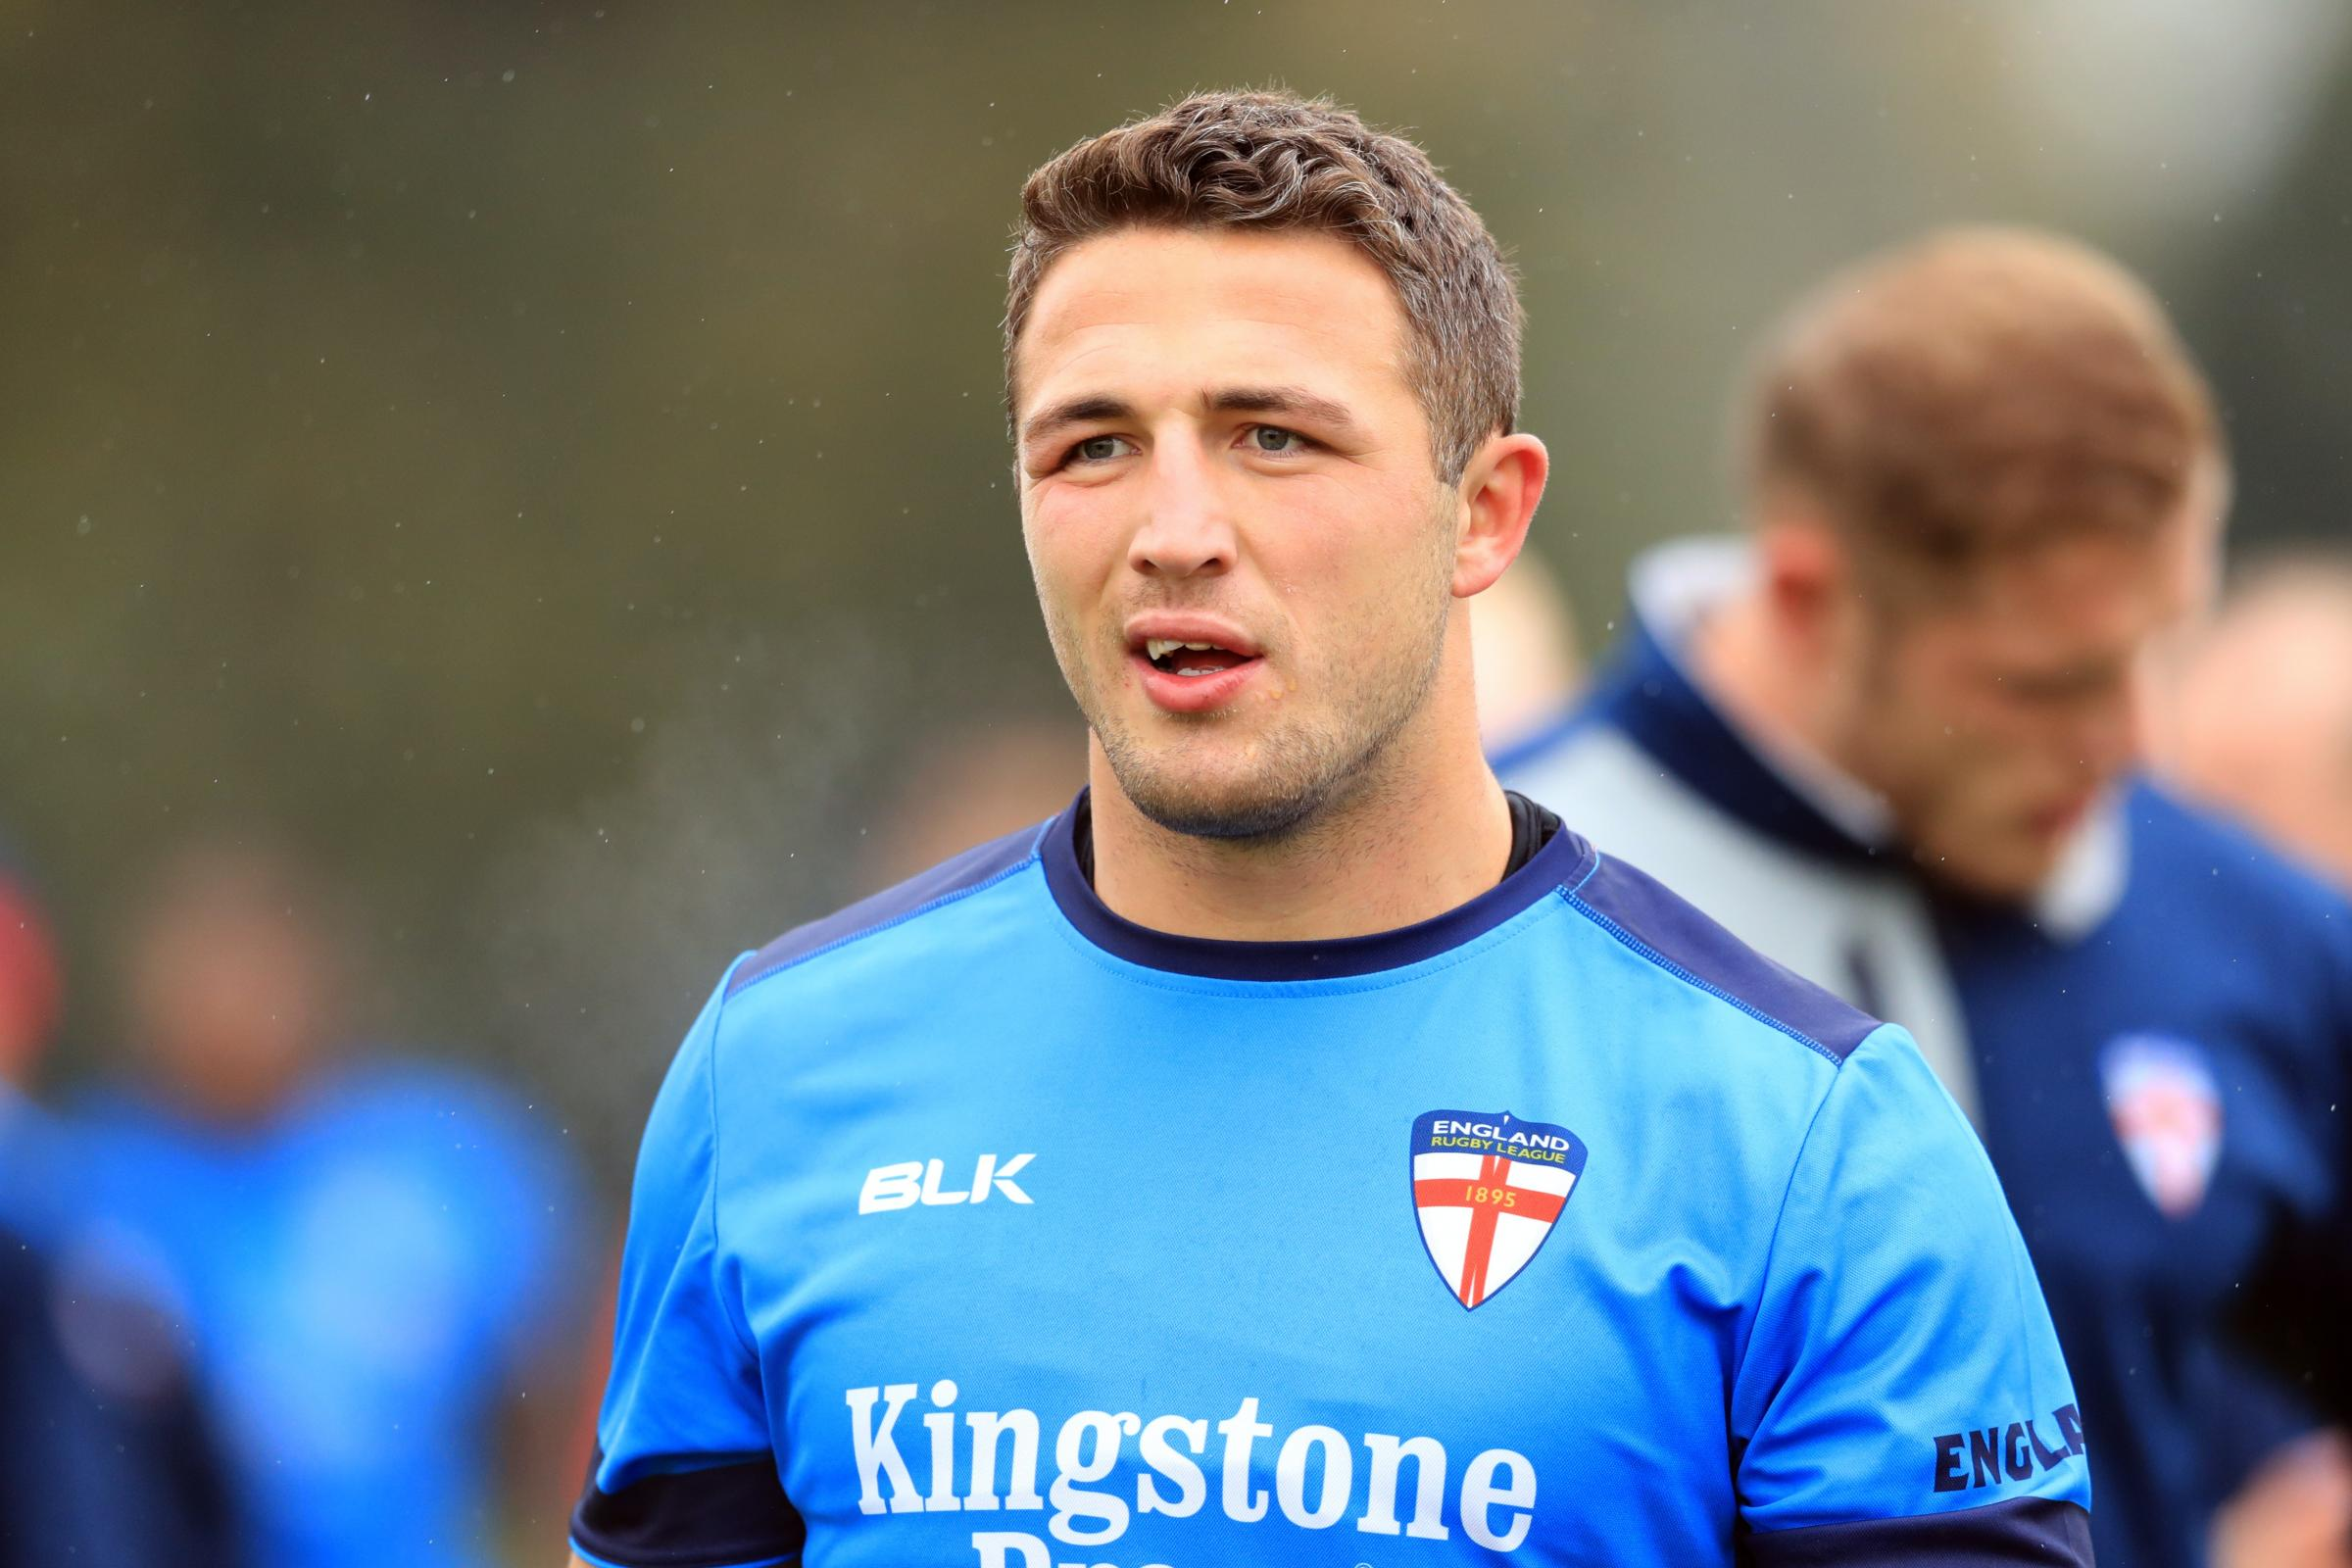 Sam Burgess Steps Down As Rabbitohs Coach Amid Drug And Violence Allegations The Leader